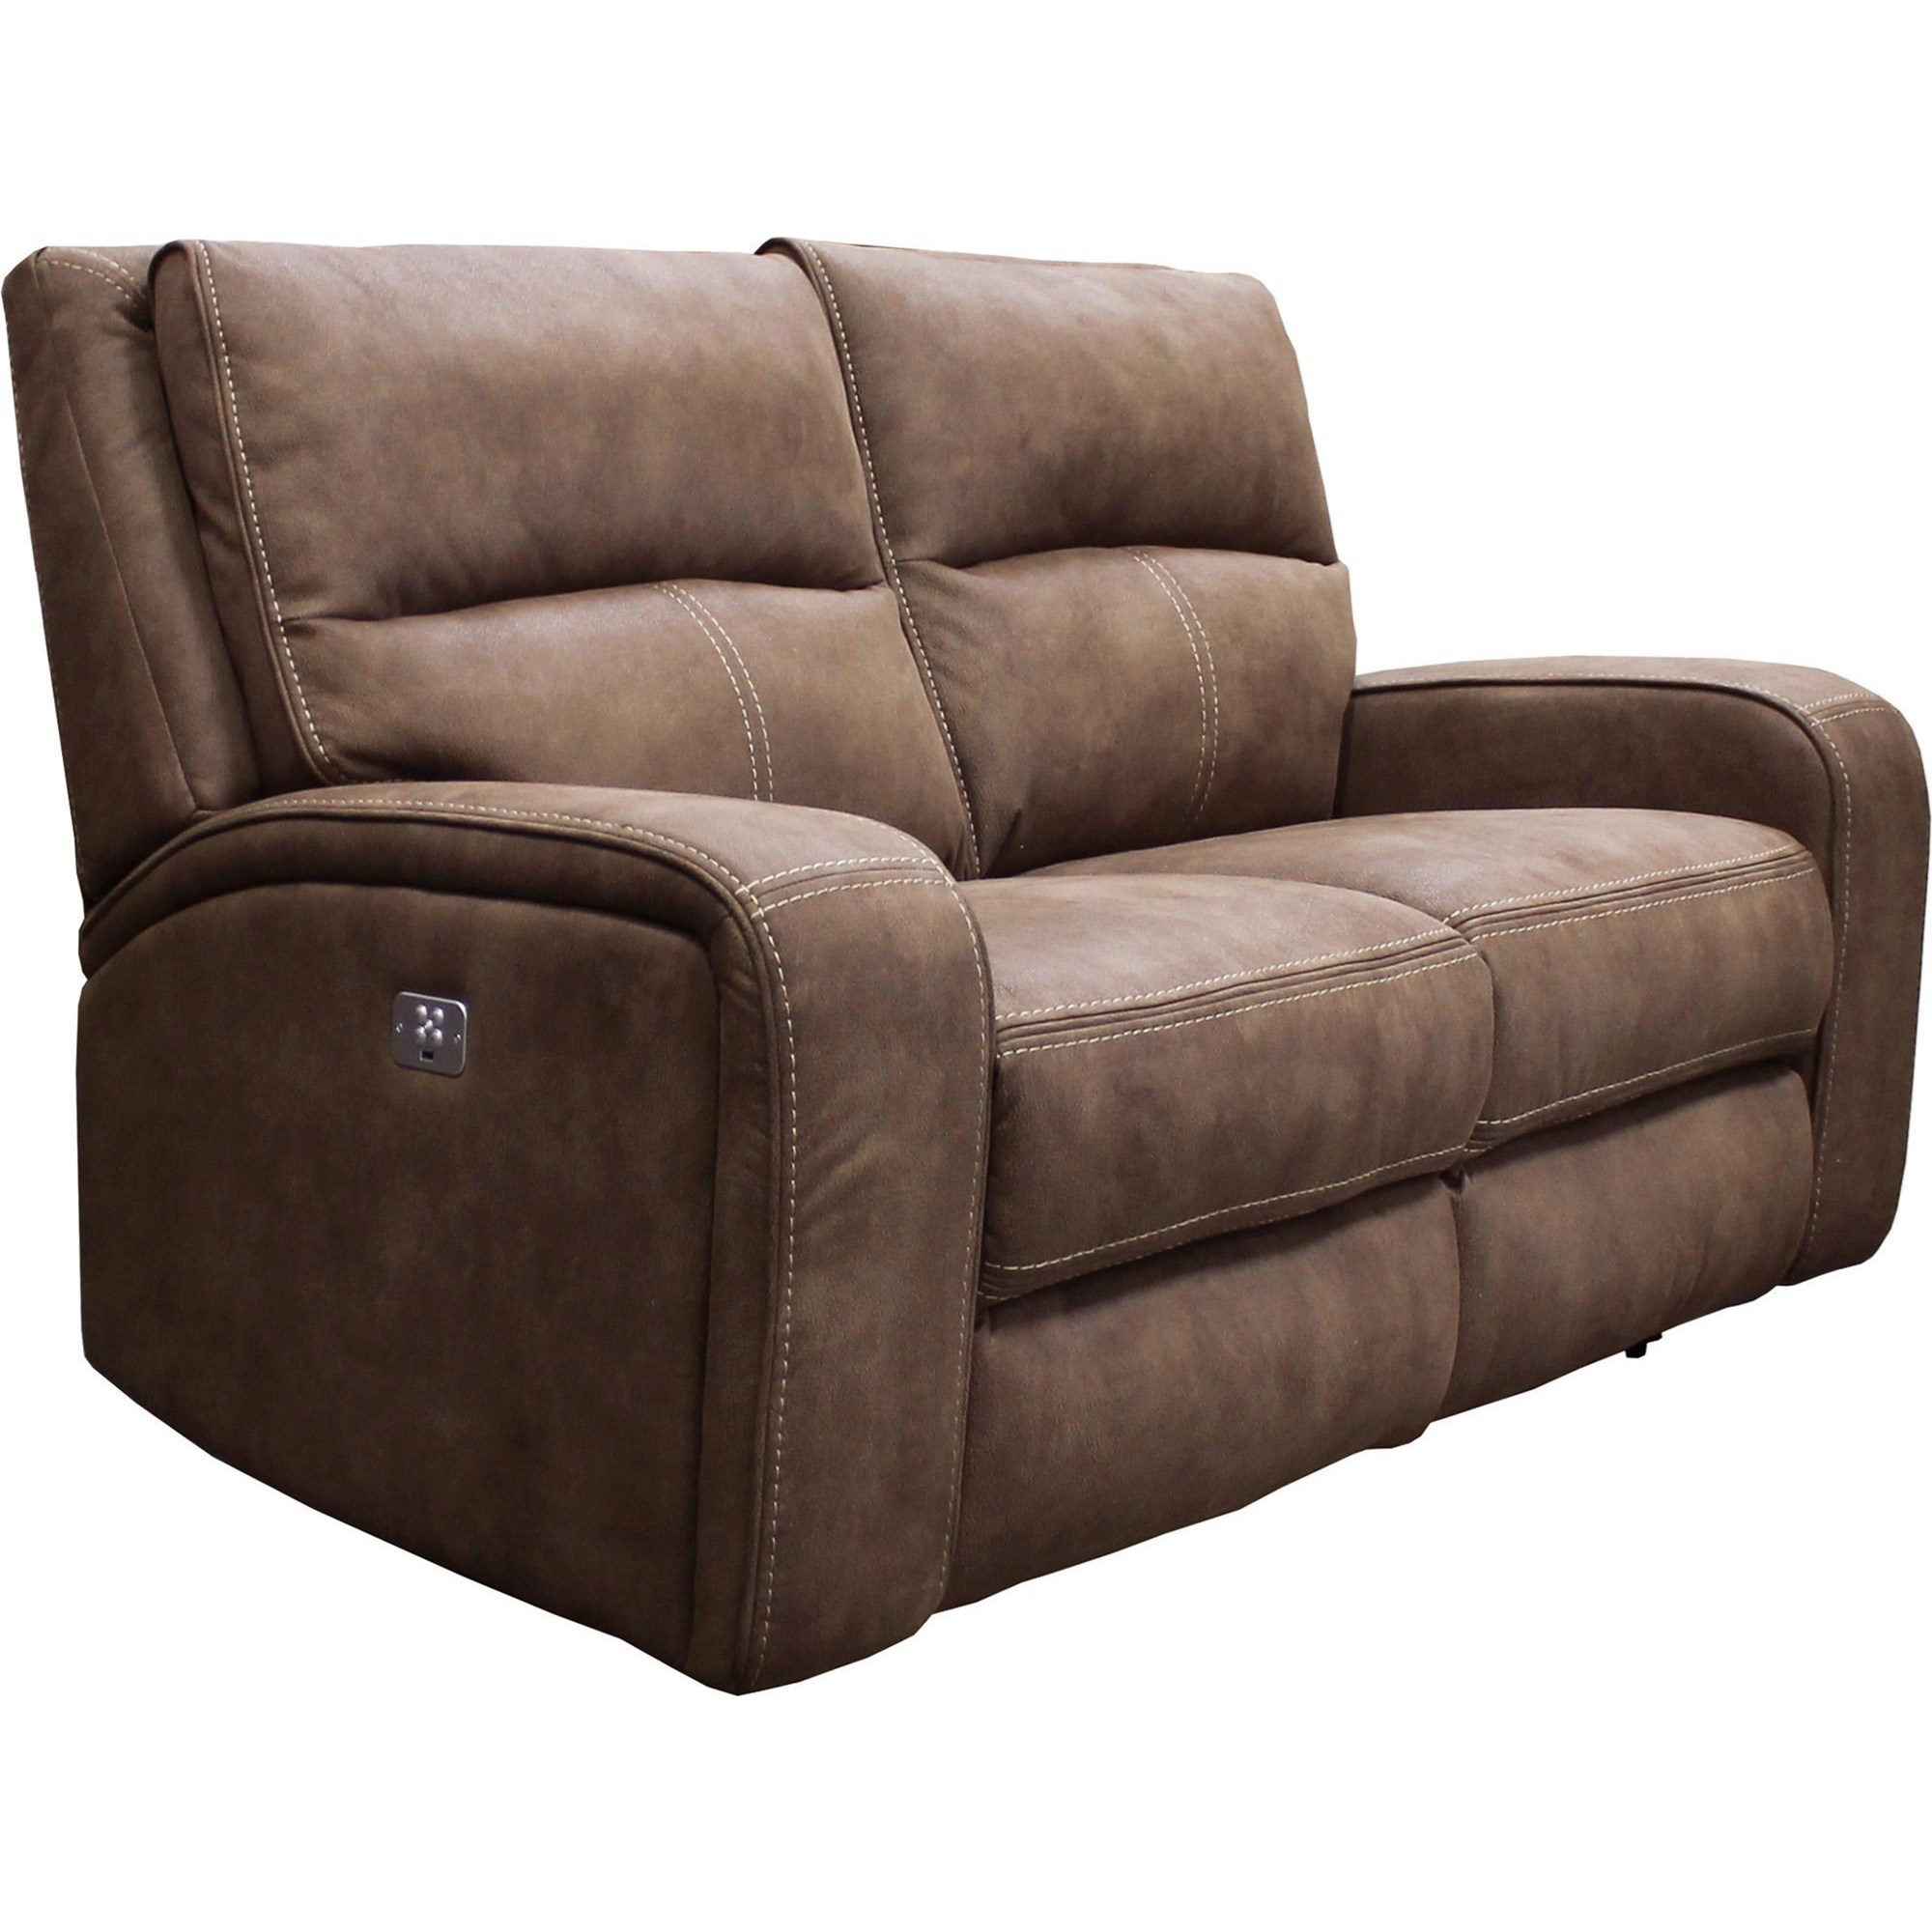 crescent power sofa recliner with headrest savers 2 seater parker living polaris kahlua dual reclining loveseat